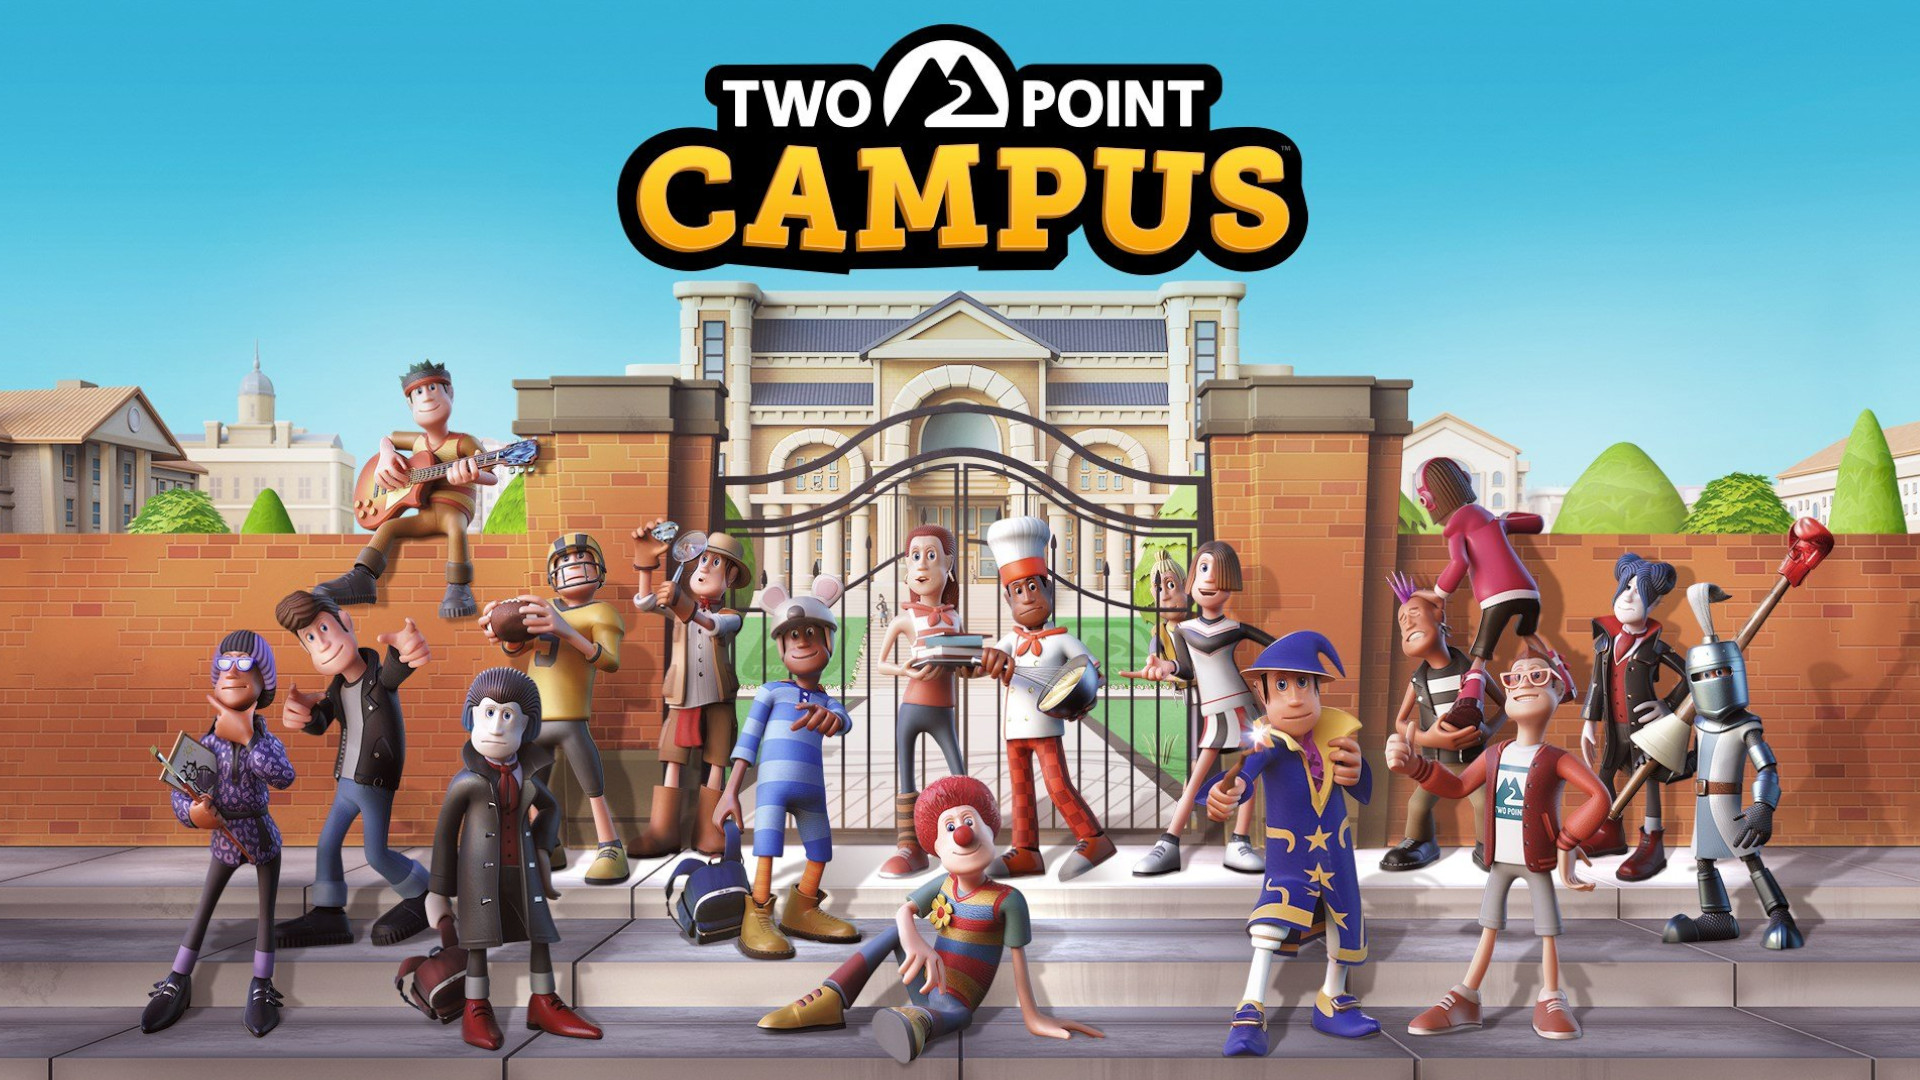 Two Point Hospital goes to college in the newly-leaked Two Point Campus